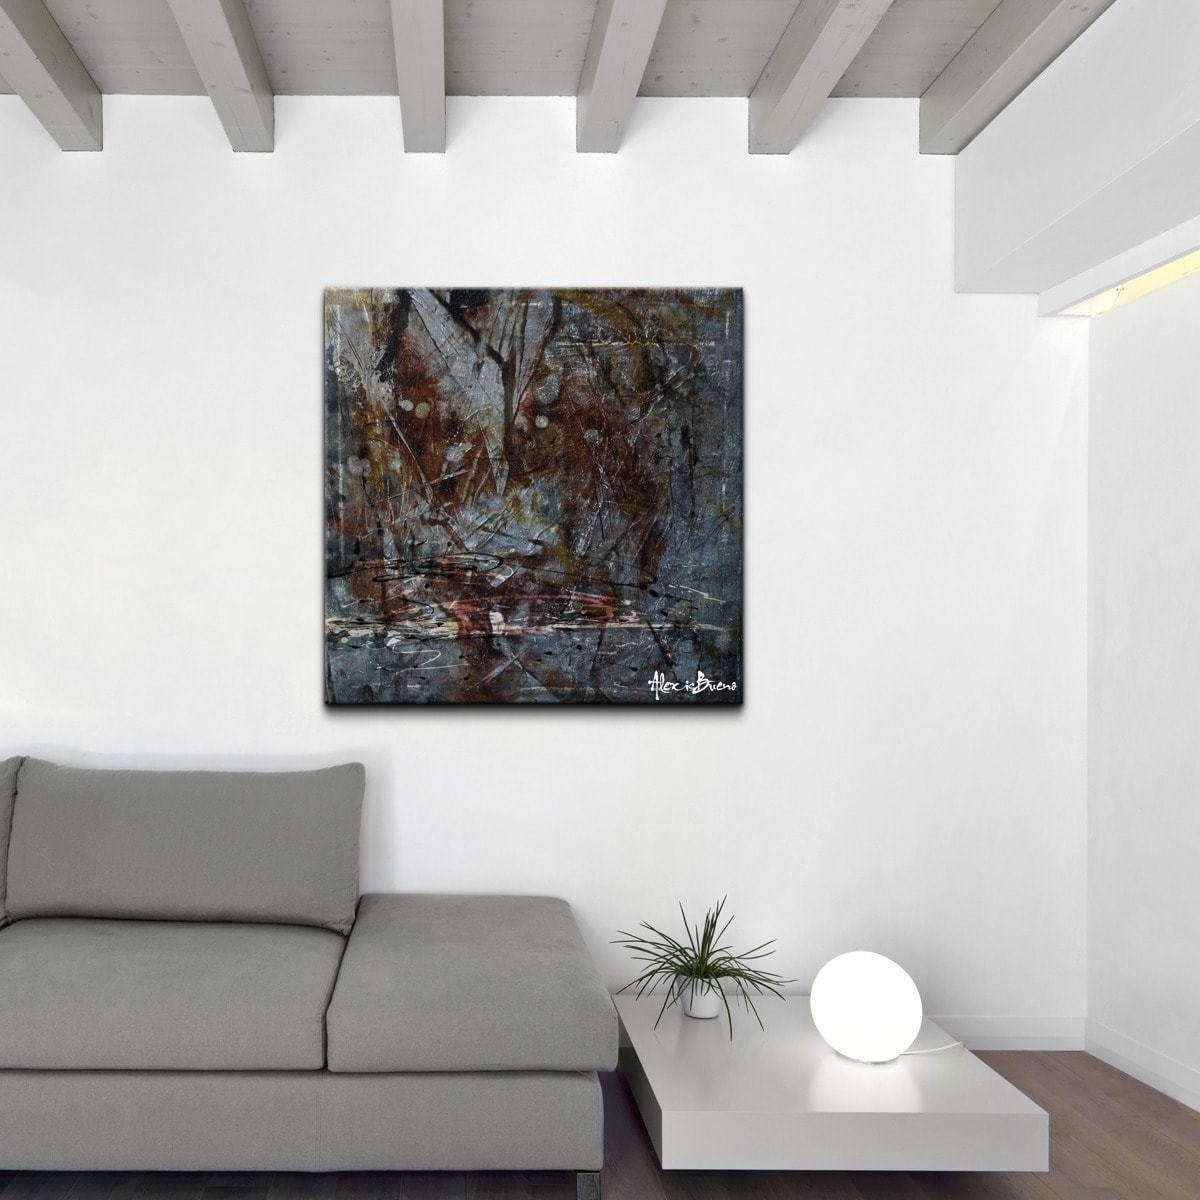 Alexis Bueno Abstract Oversized Canvas Wall Art | Ebay With 2018 Abstract Oversized Canvas Wall Art (View 18 of 20)